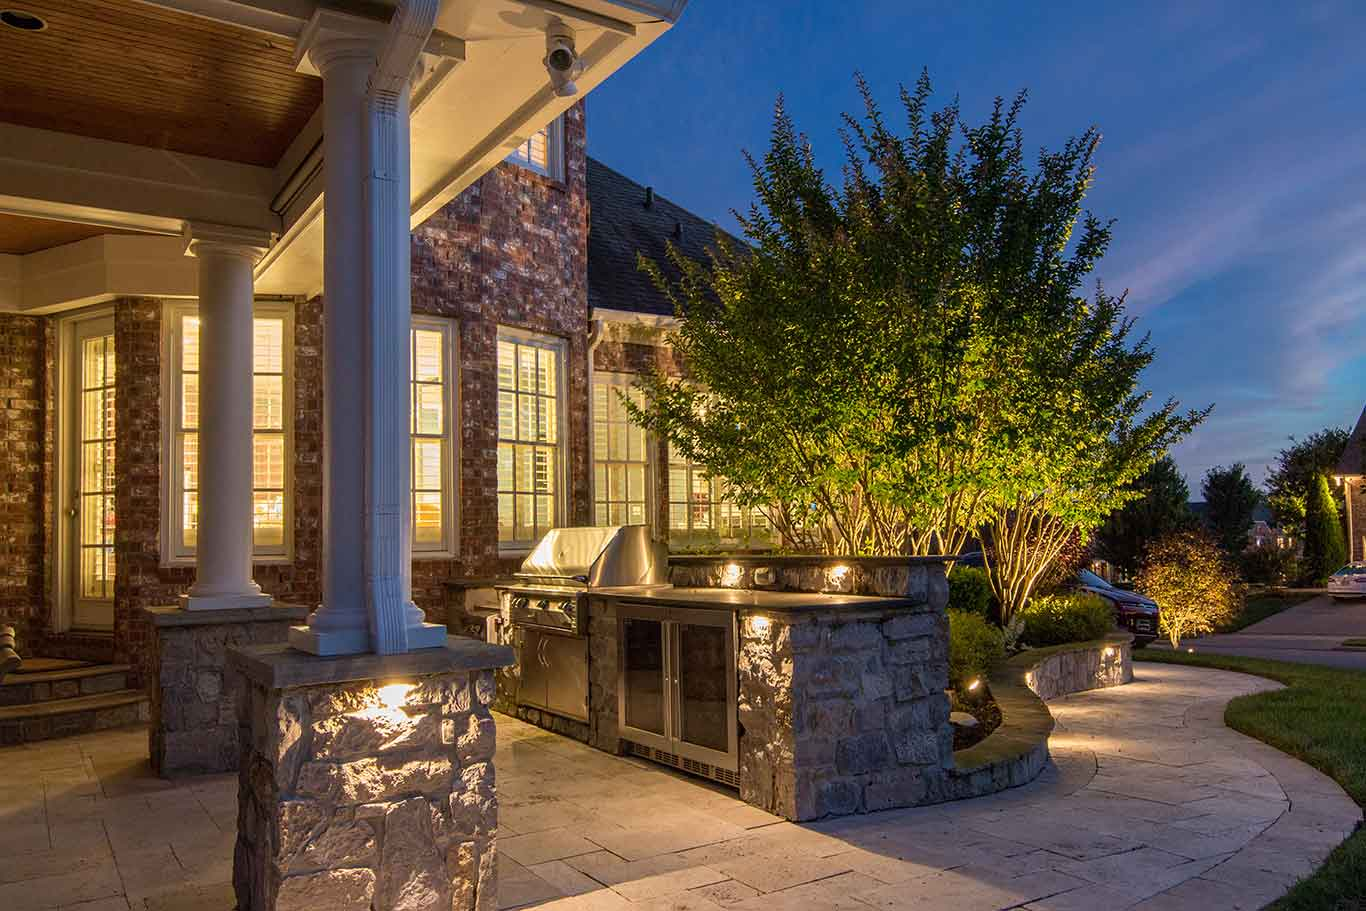 Outdoor lighting on hardscape features of outdoor kitchen area